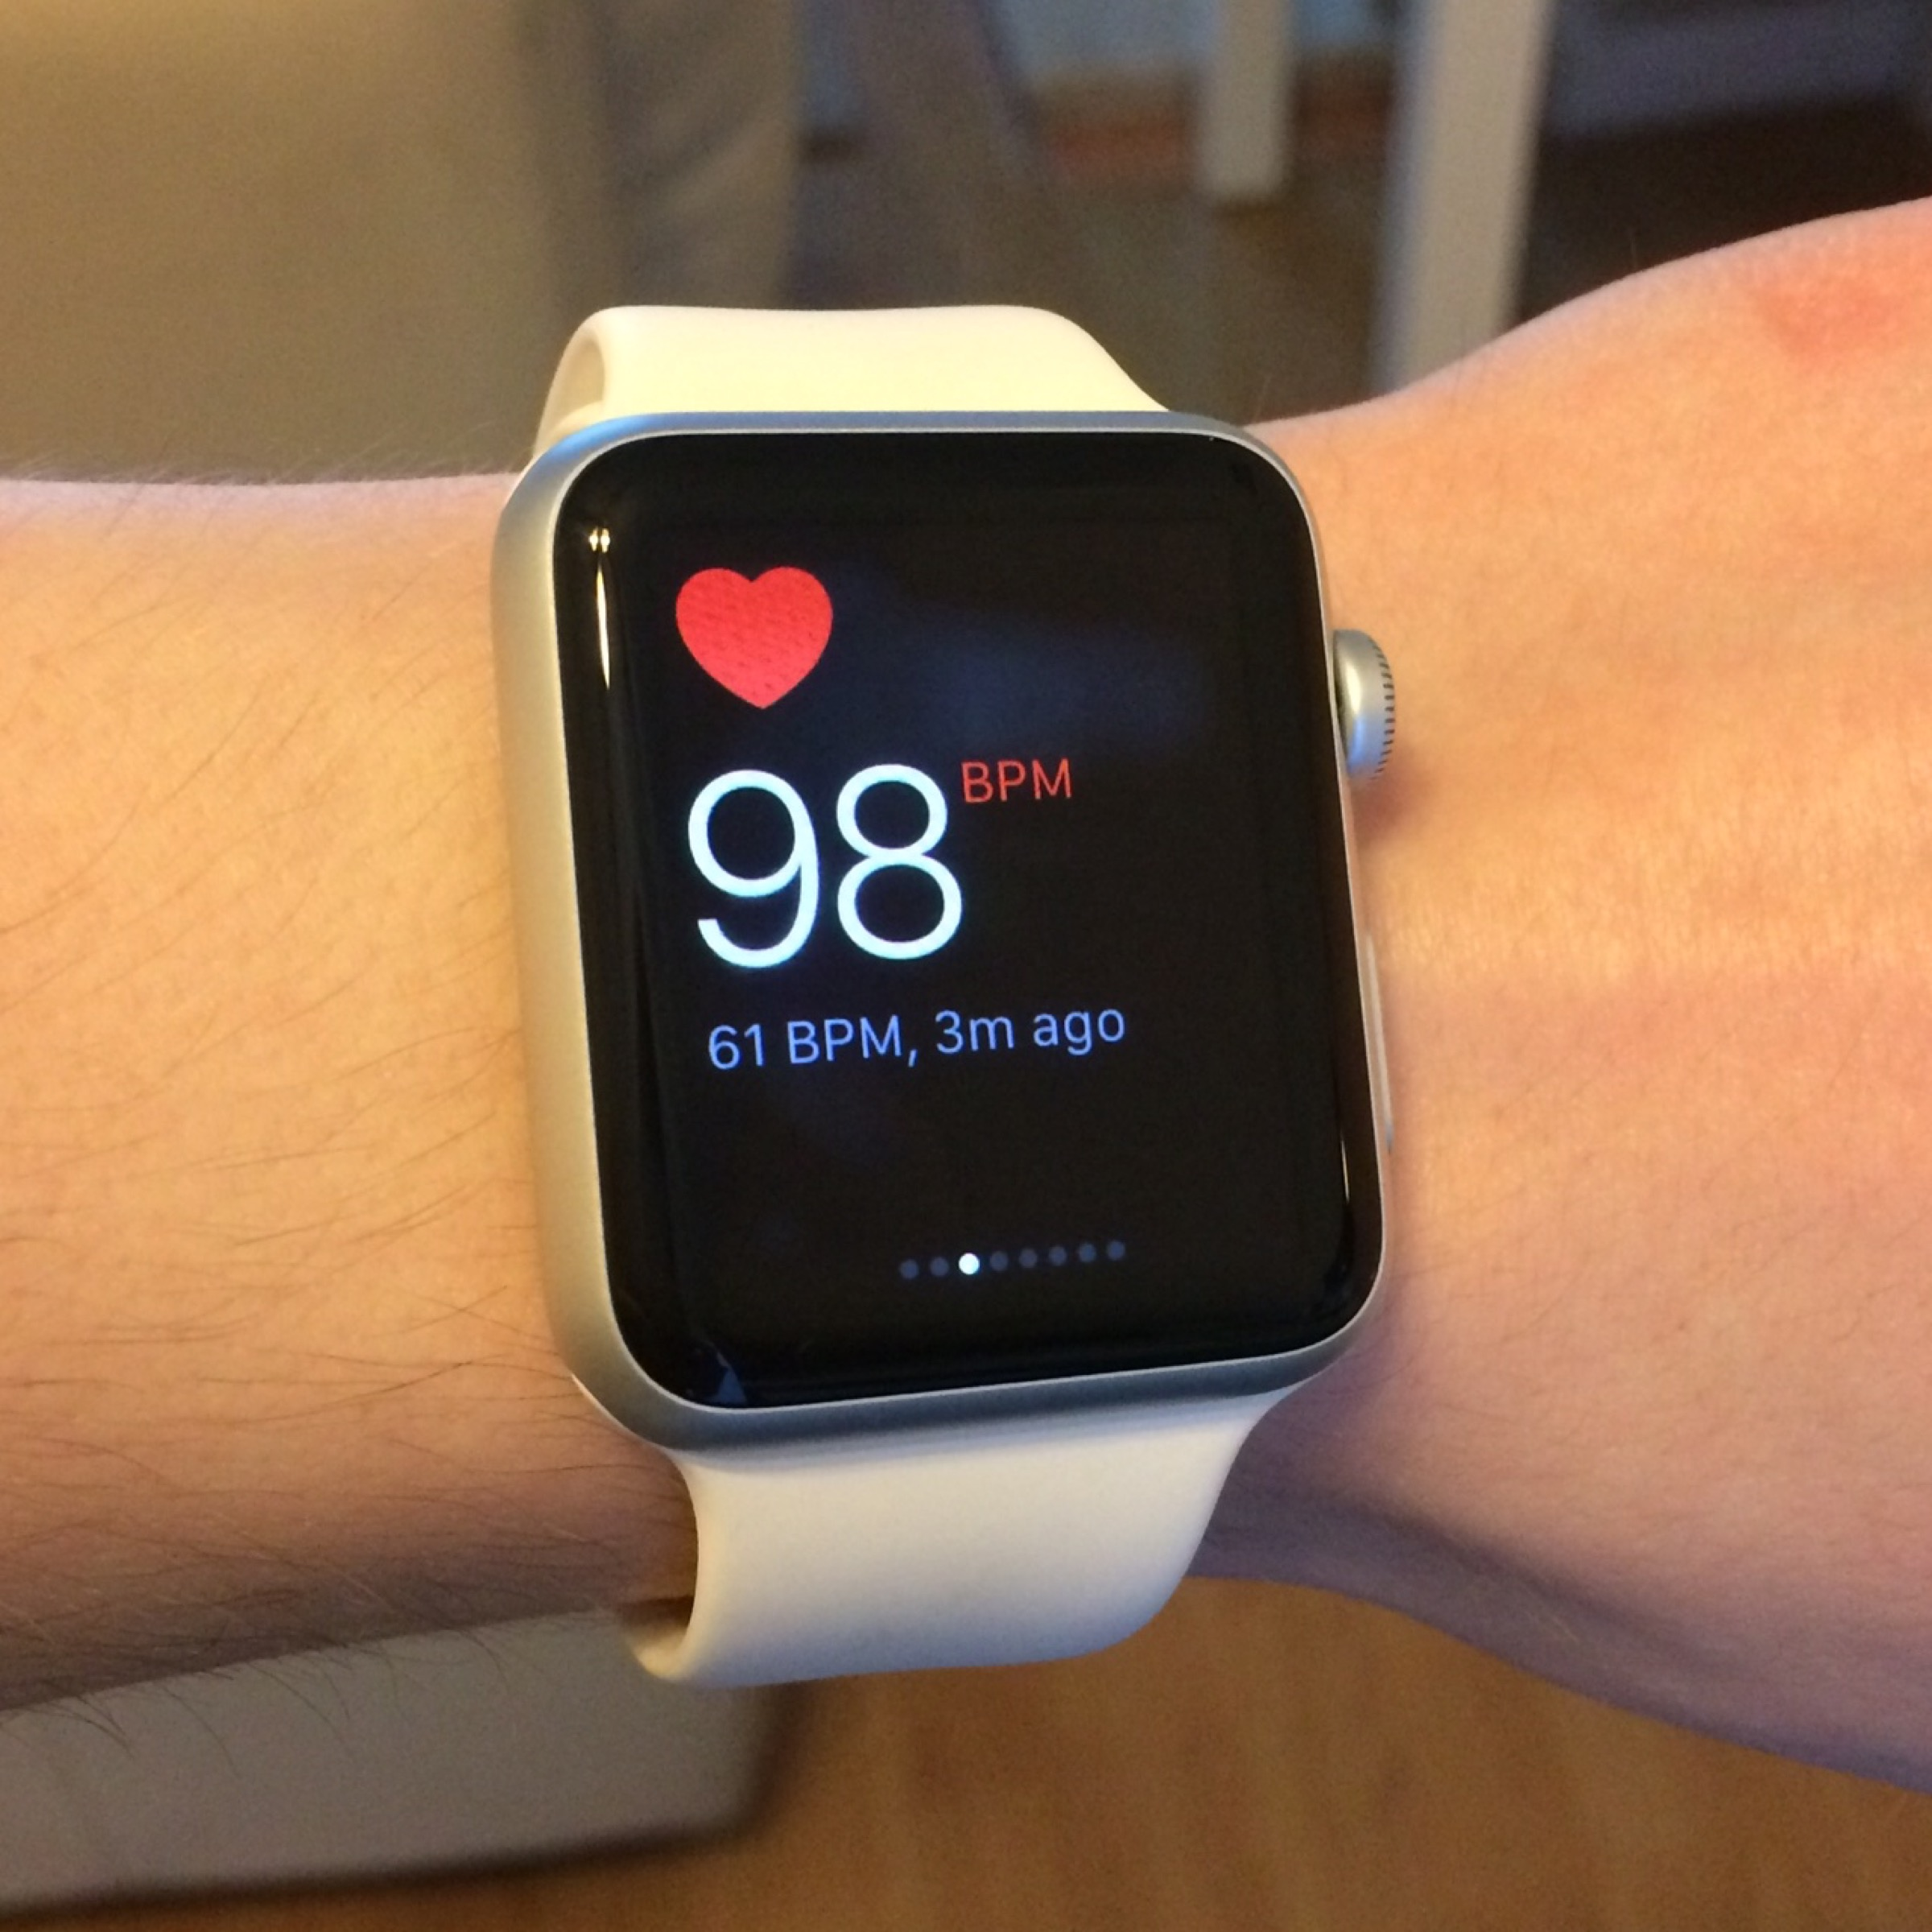 Could current Apple Watches also measure blood oxygen saturation?